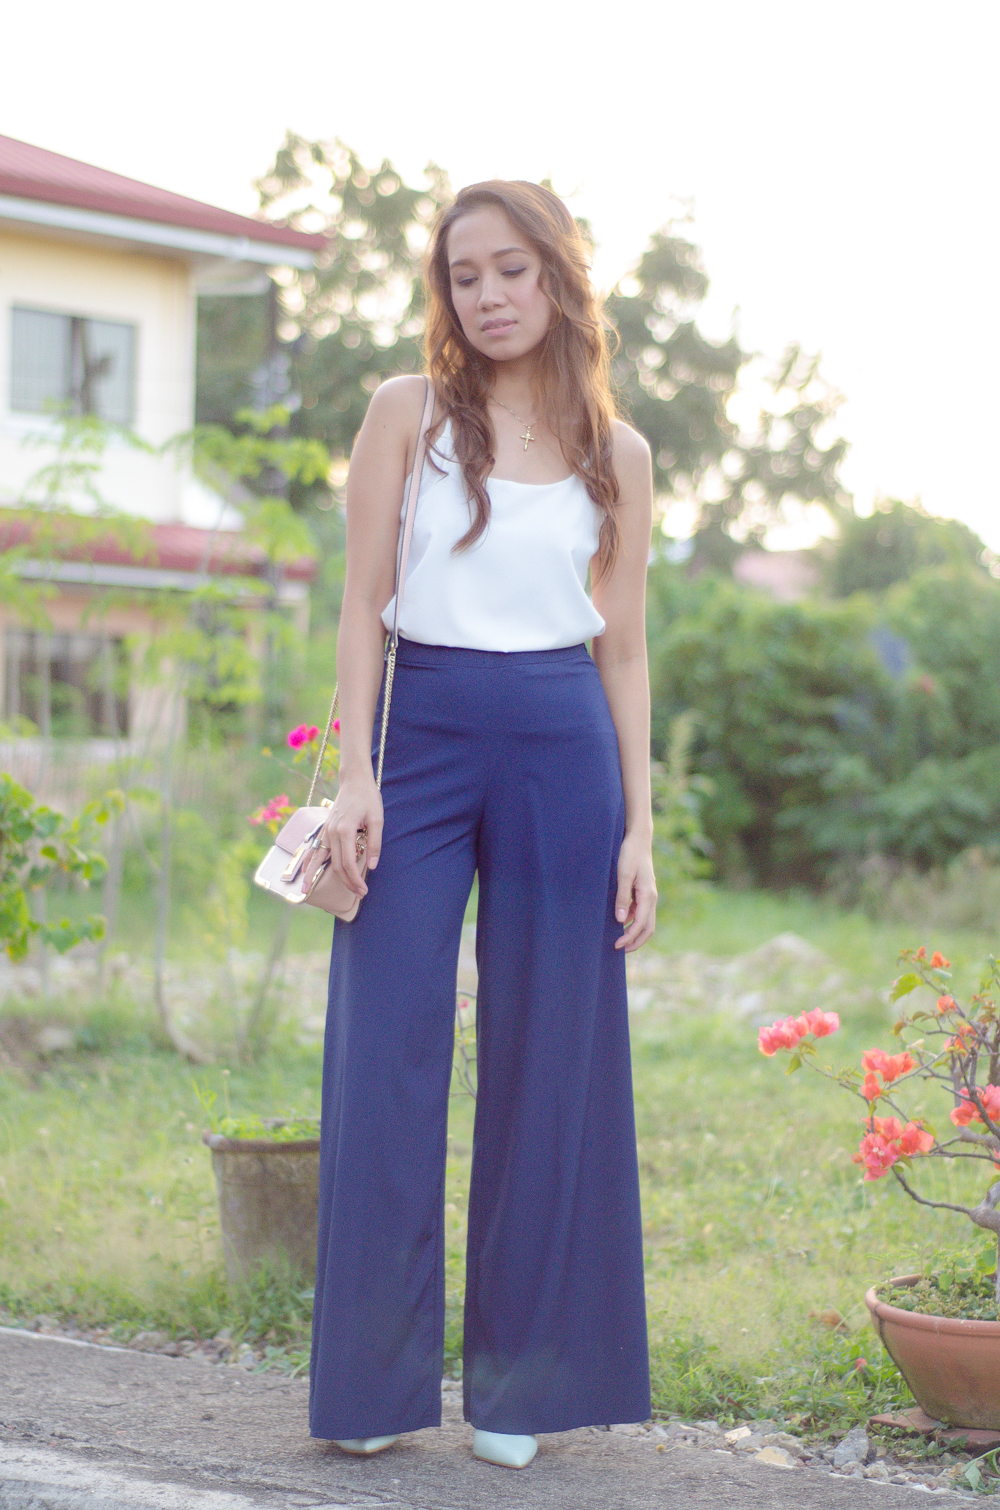 Personal Style Staple Palazzo Pants Perfumed Red Shoes Cebu Fashion Beauty And Lifestyle